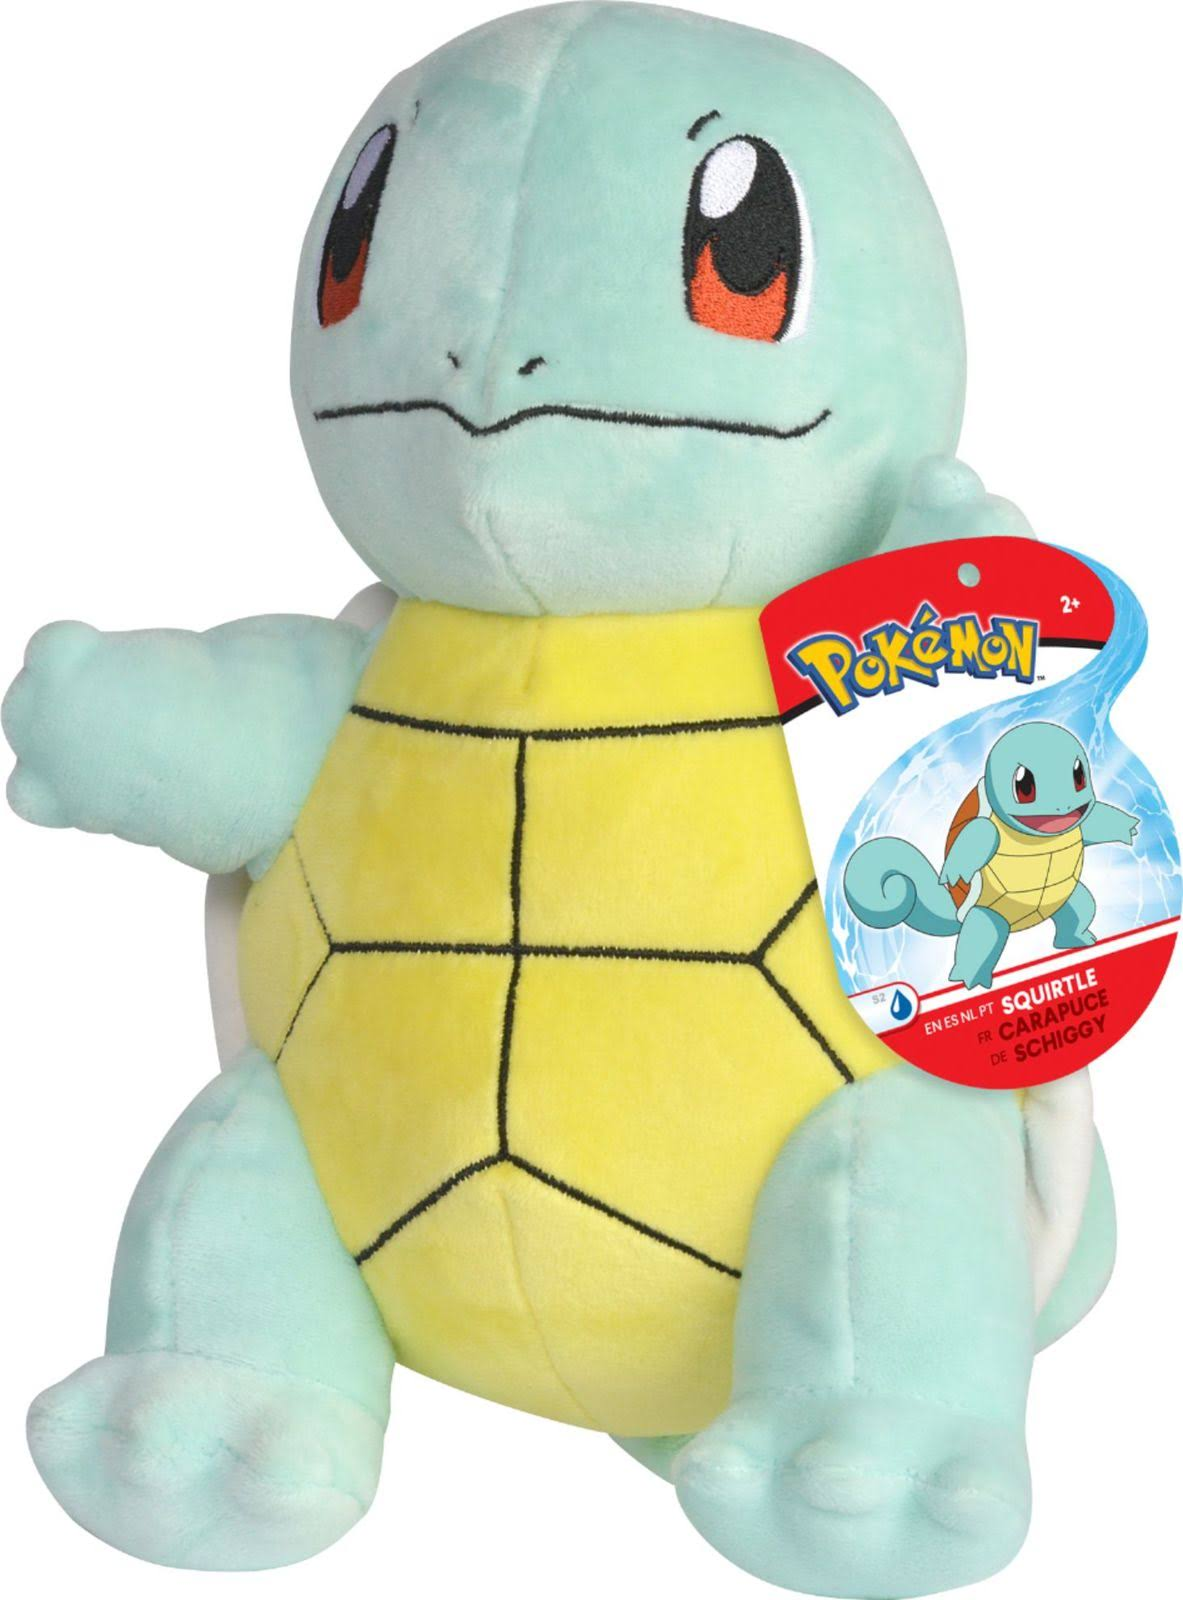 "Pokémon - 8"" Plush Toy - Styles May Vary"